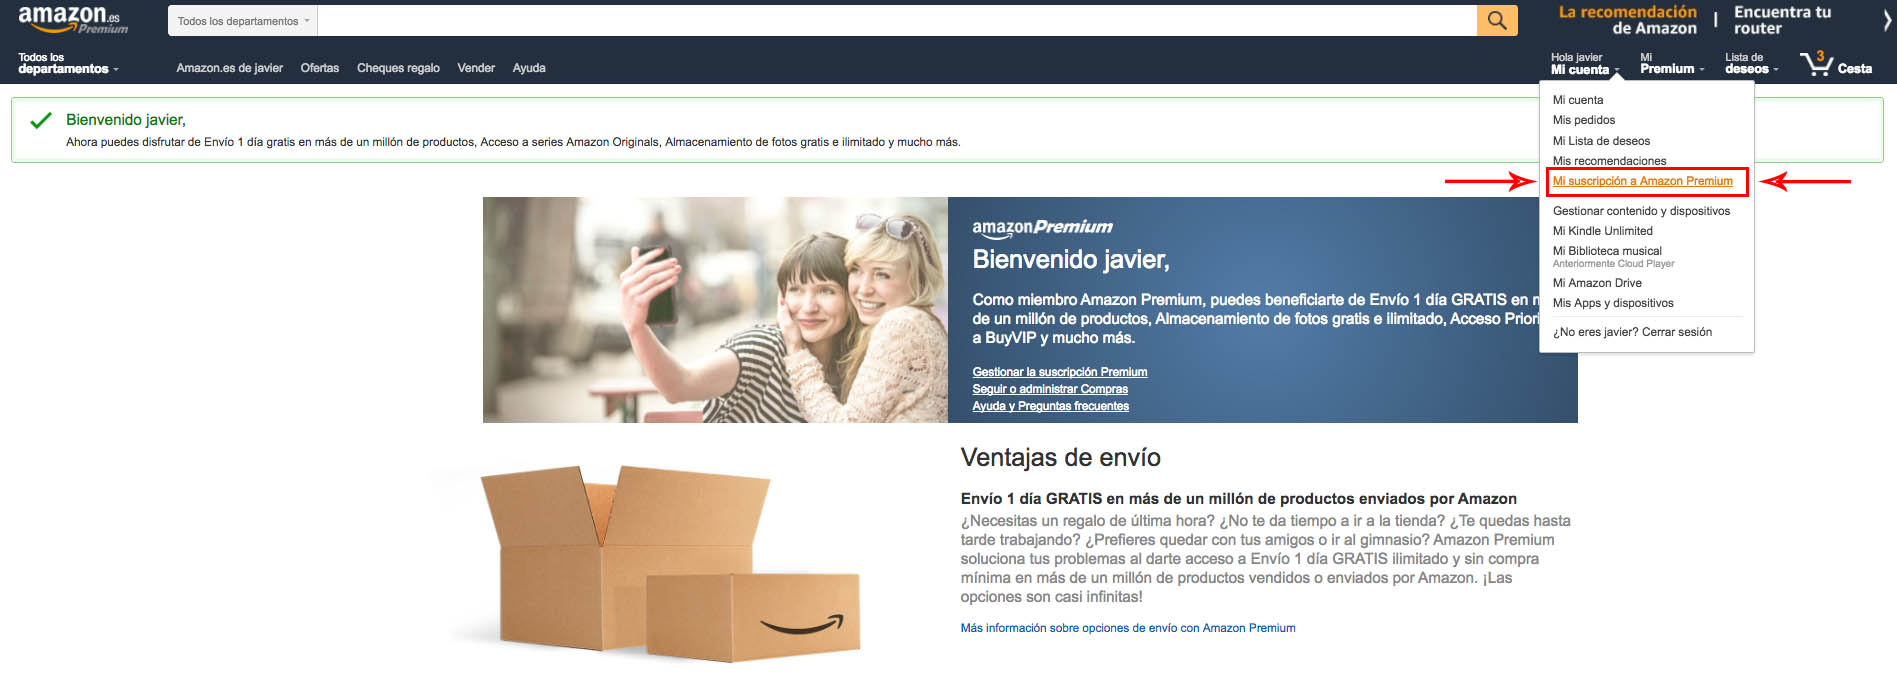 Amazon Premiun Cancelar